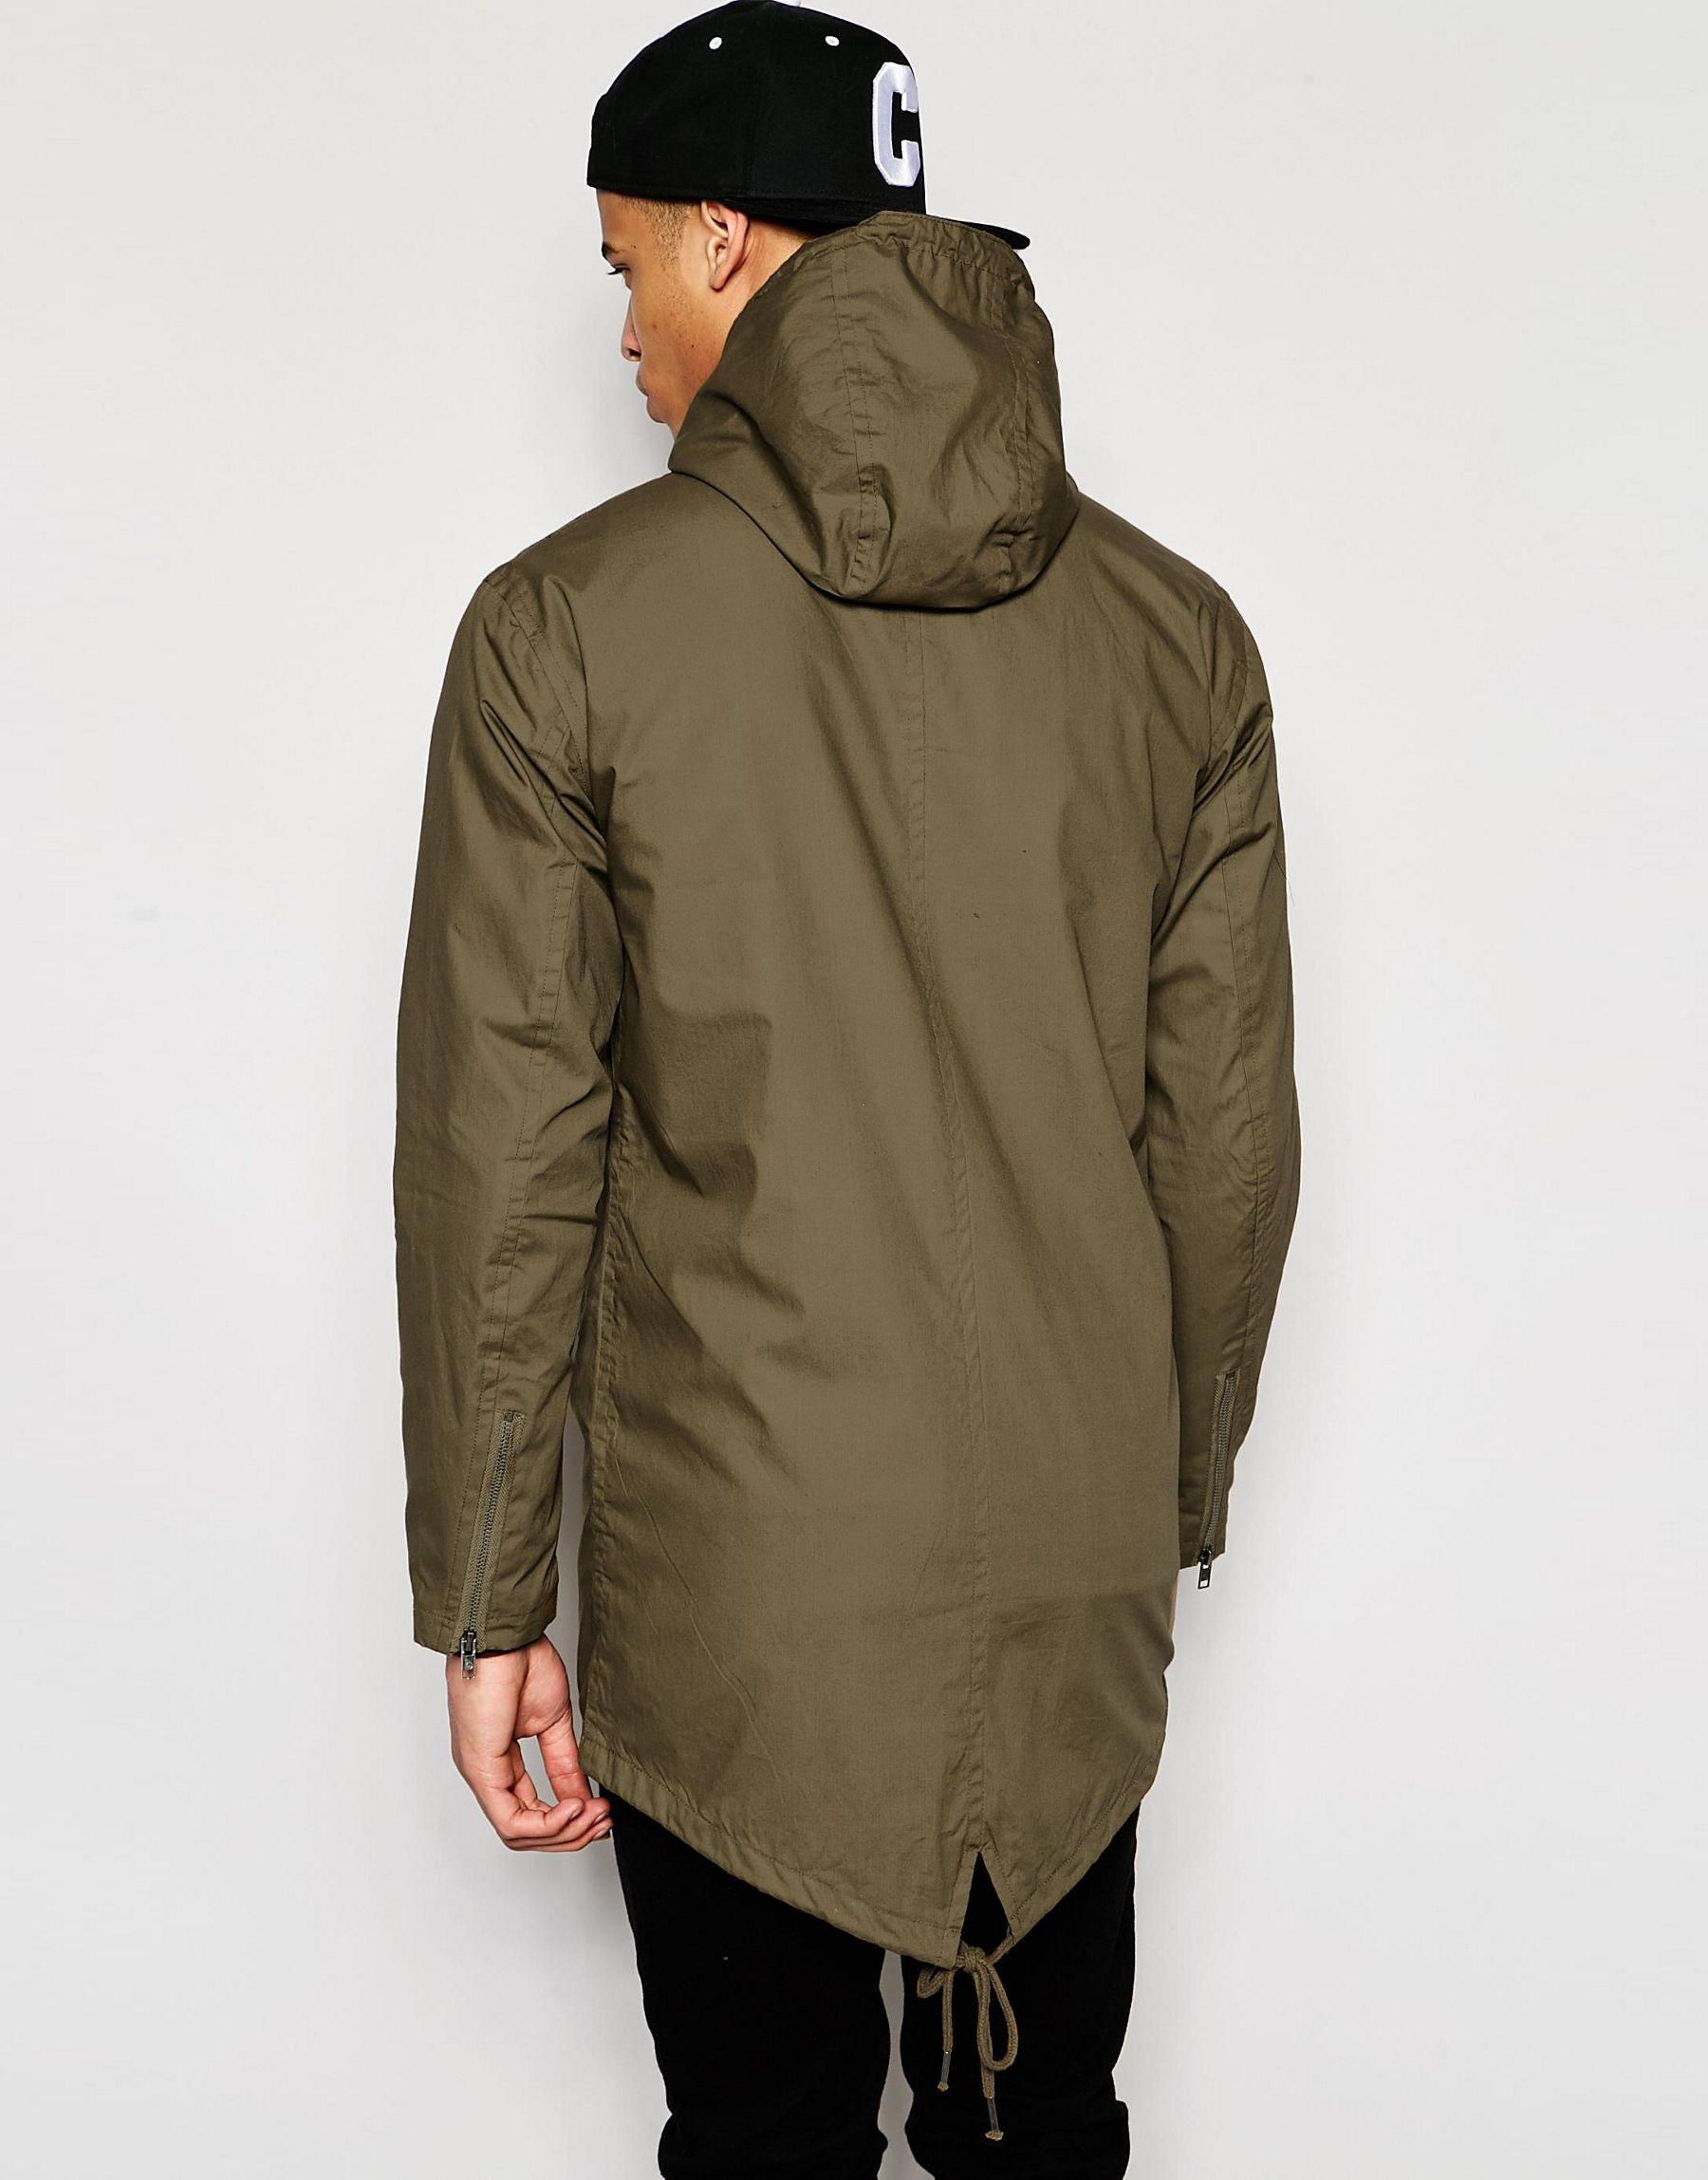 Pull bear parka jacket with hood in khaki in gray for men for Bear river workwear shirts